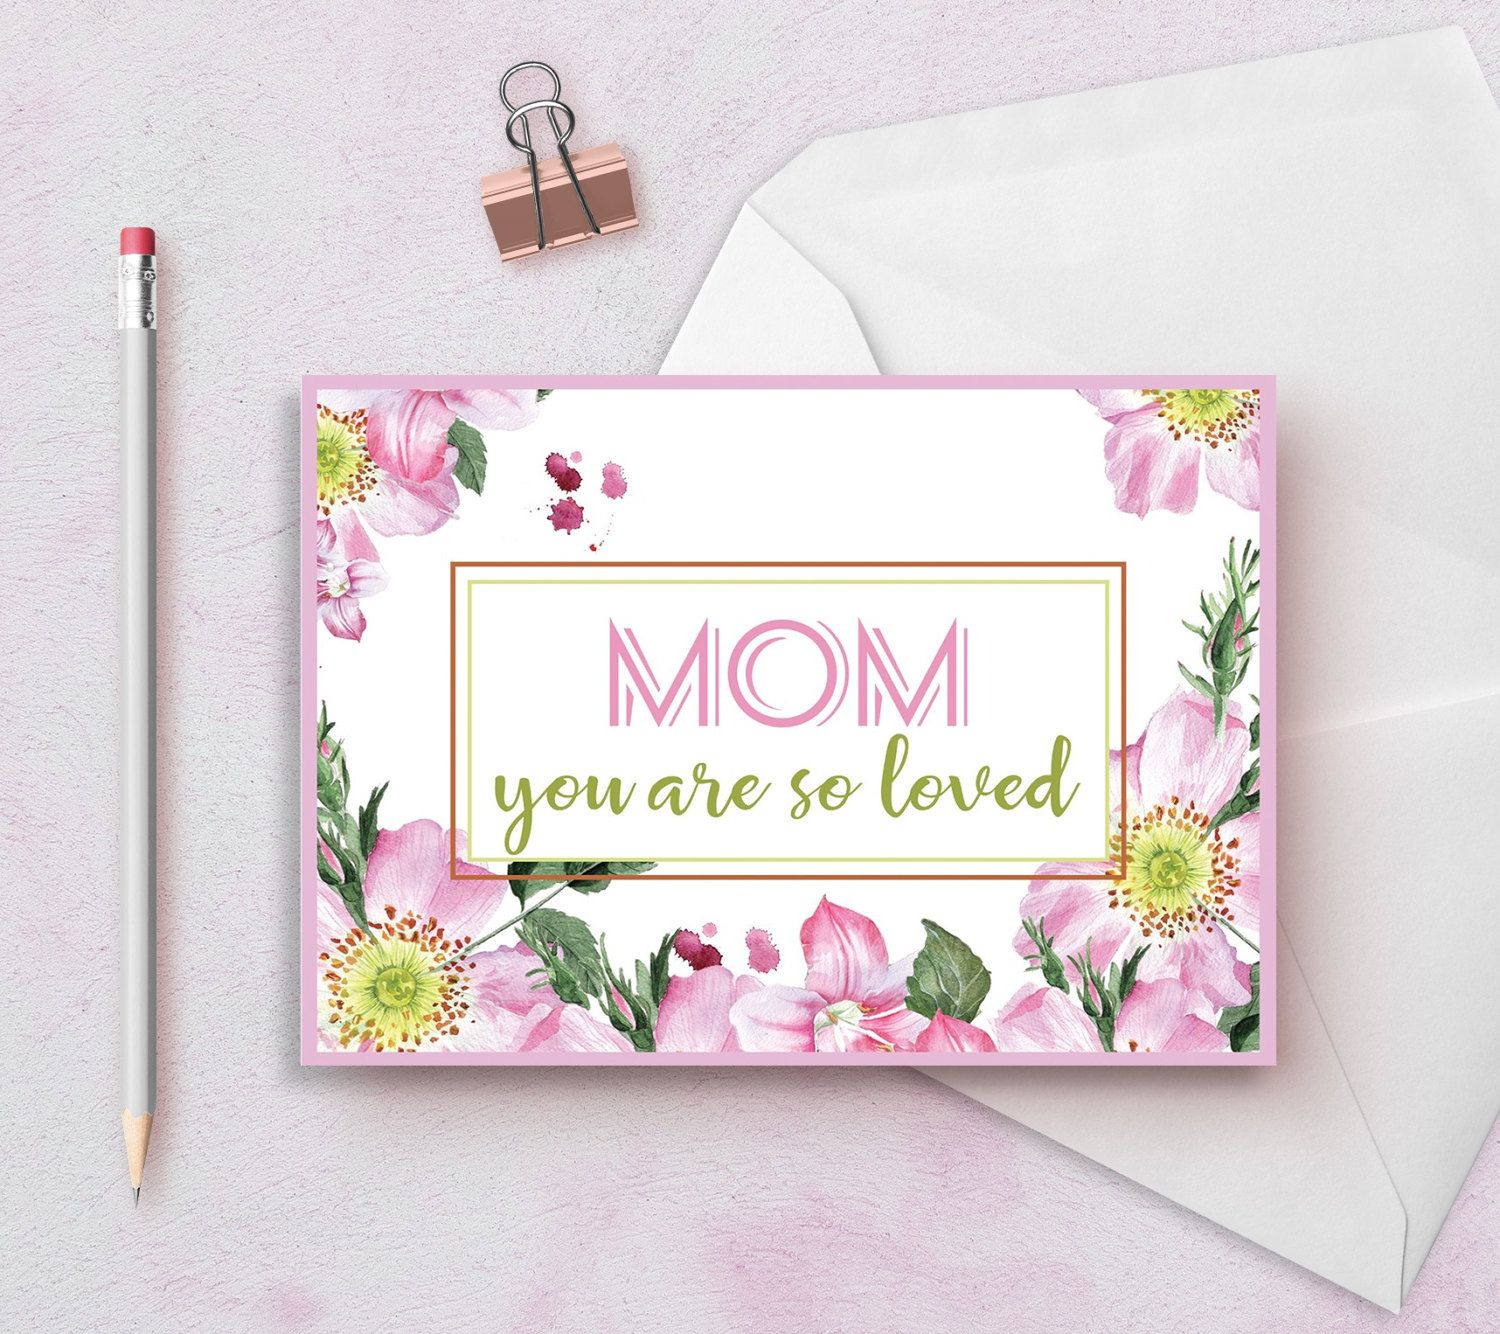 Mom birthday card printable happy birthday mom card printable mothers day card floral printable mom card mom birthday card personalized birthday greeting m4hsunfo